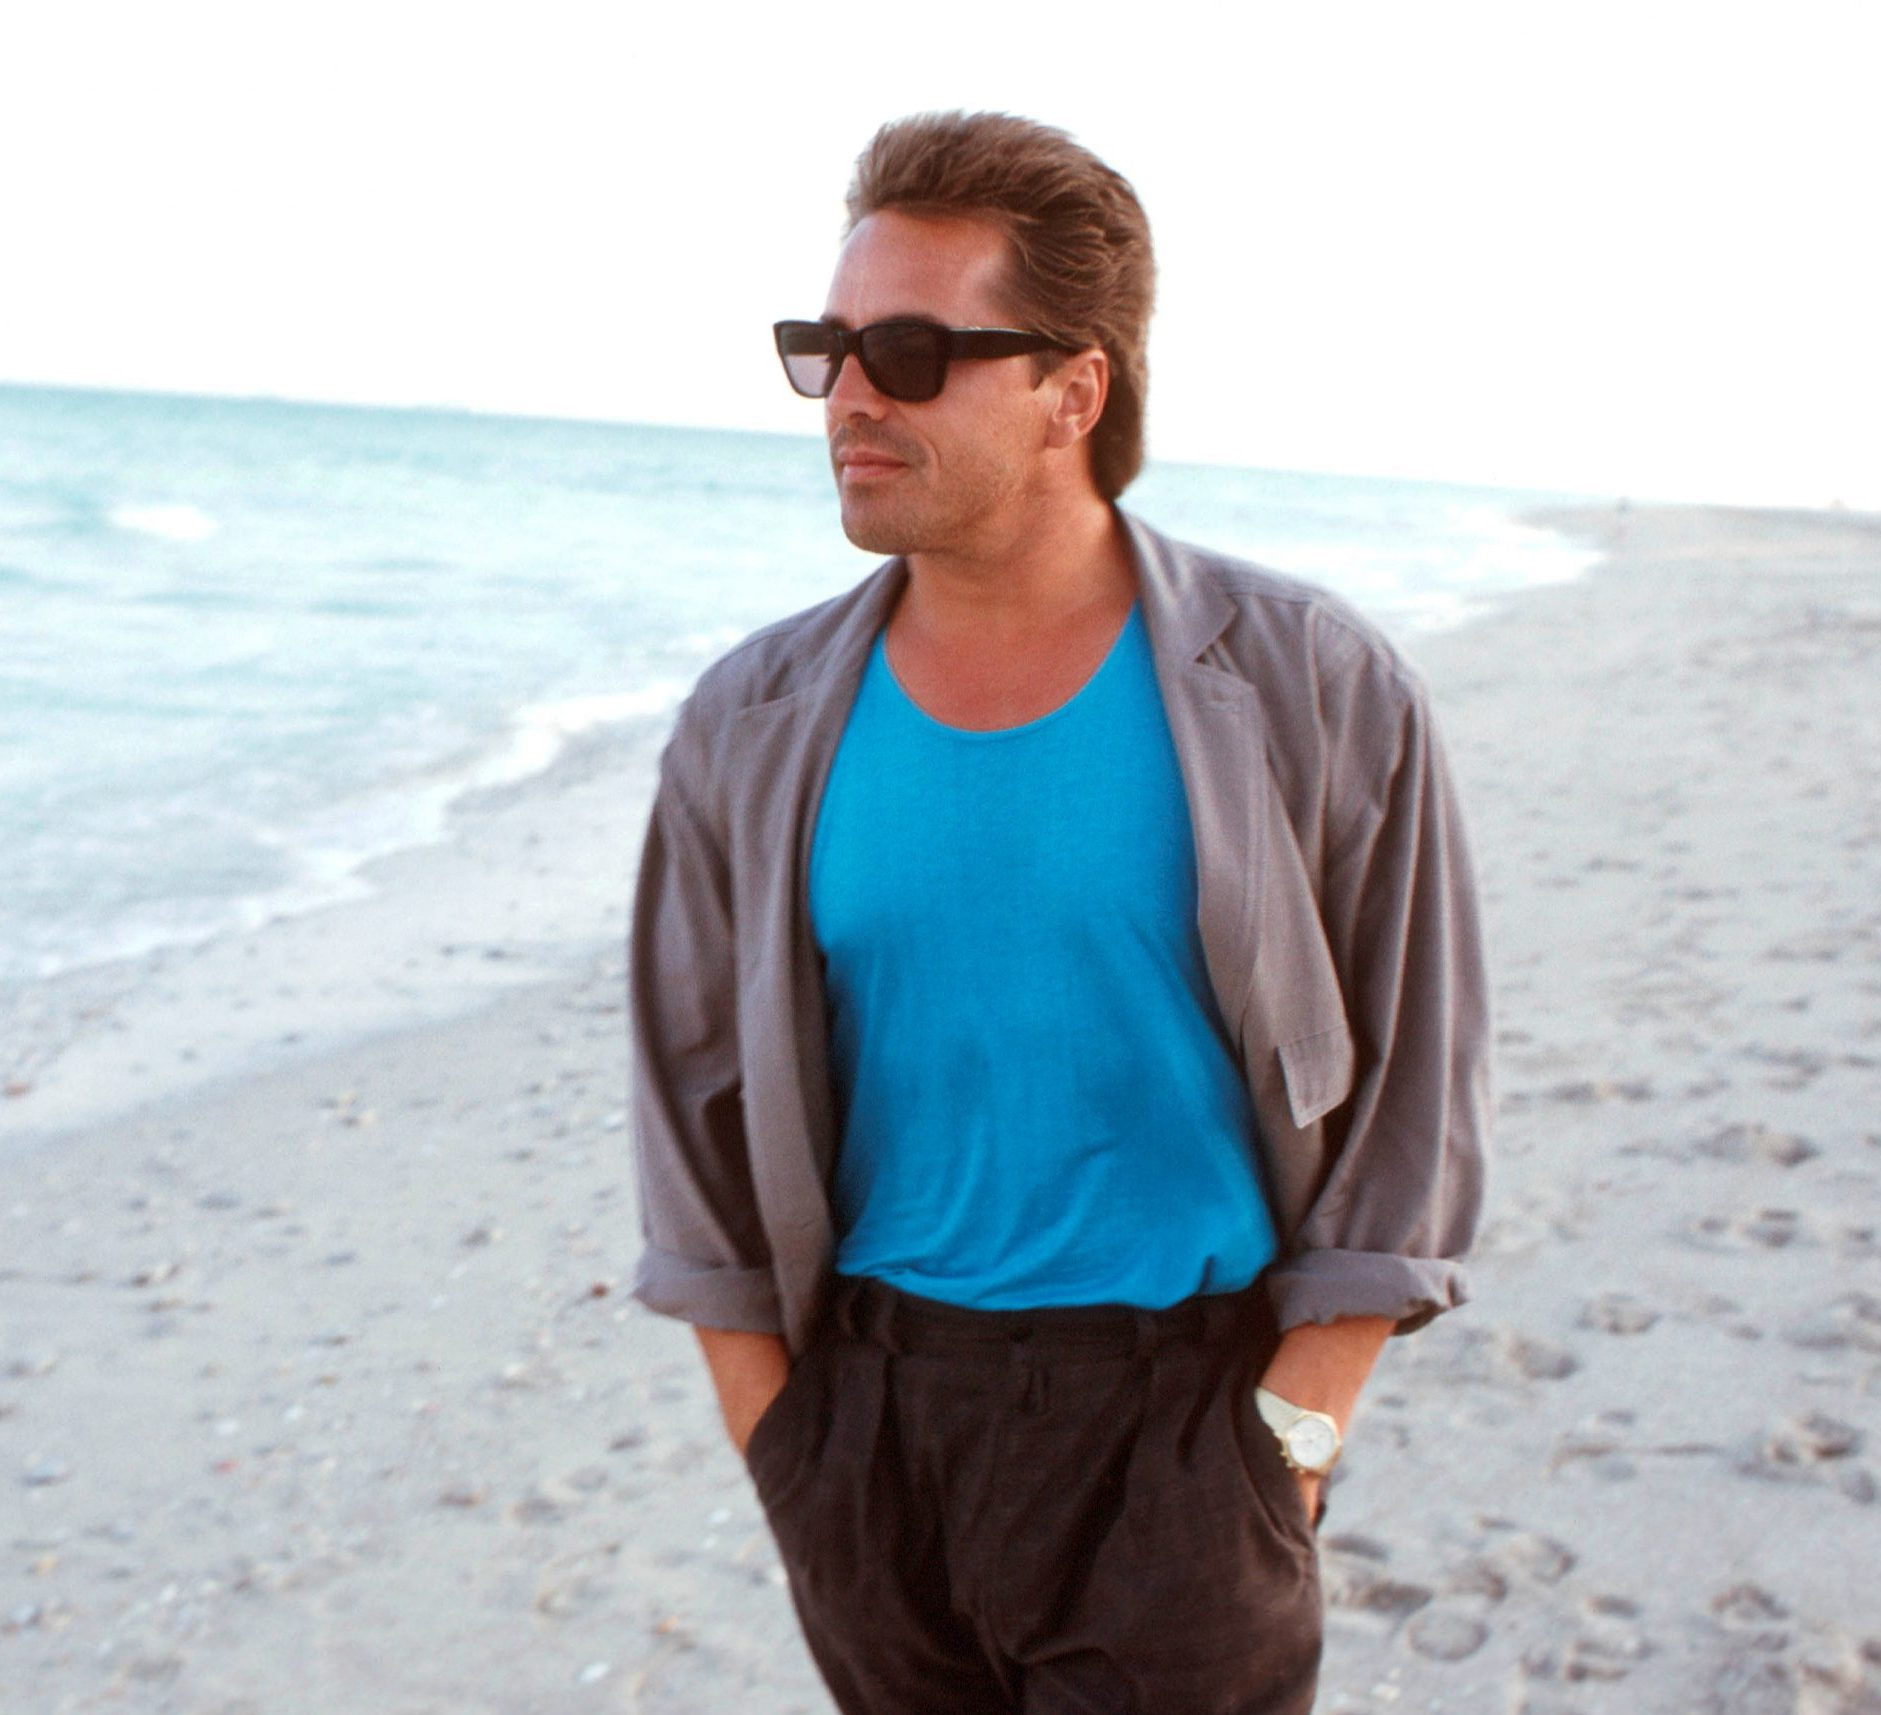 rs 193557 111656120 scaled e1608305191373 20 Things You Probably Didn't Know About Miami Vice